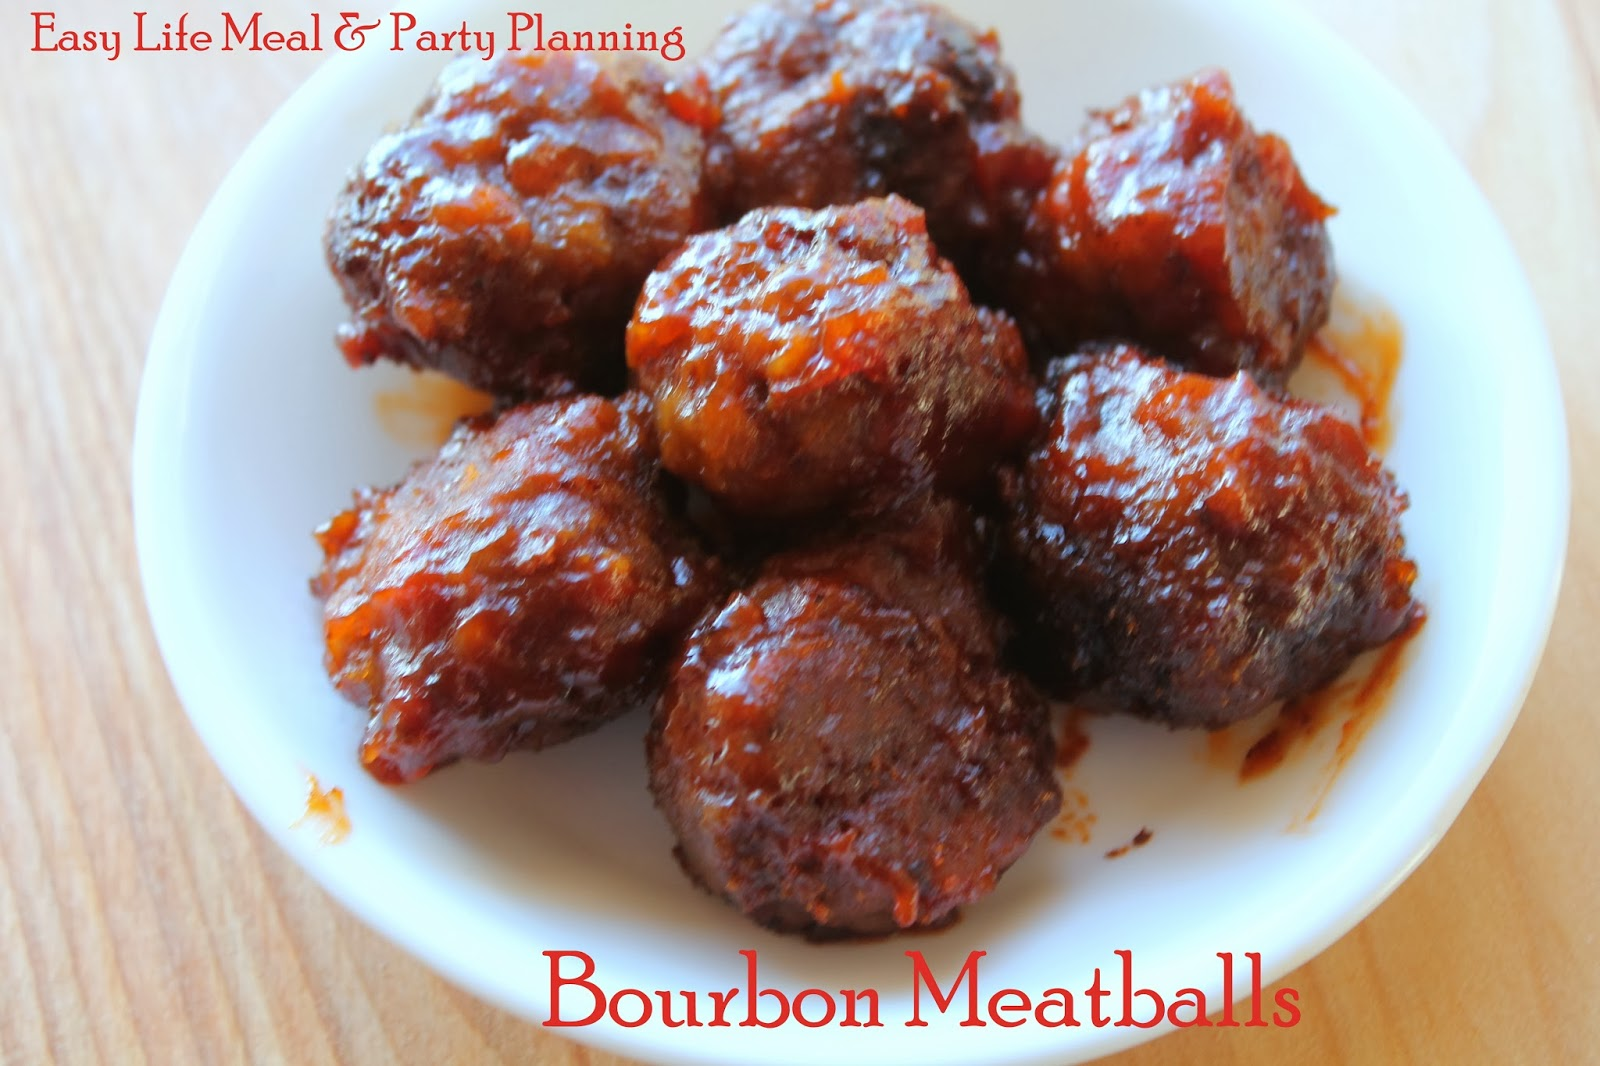 The meatballs in bourbon sauce is my favorite appetizer for parties it